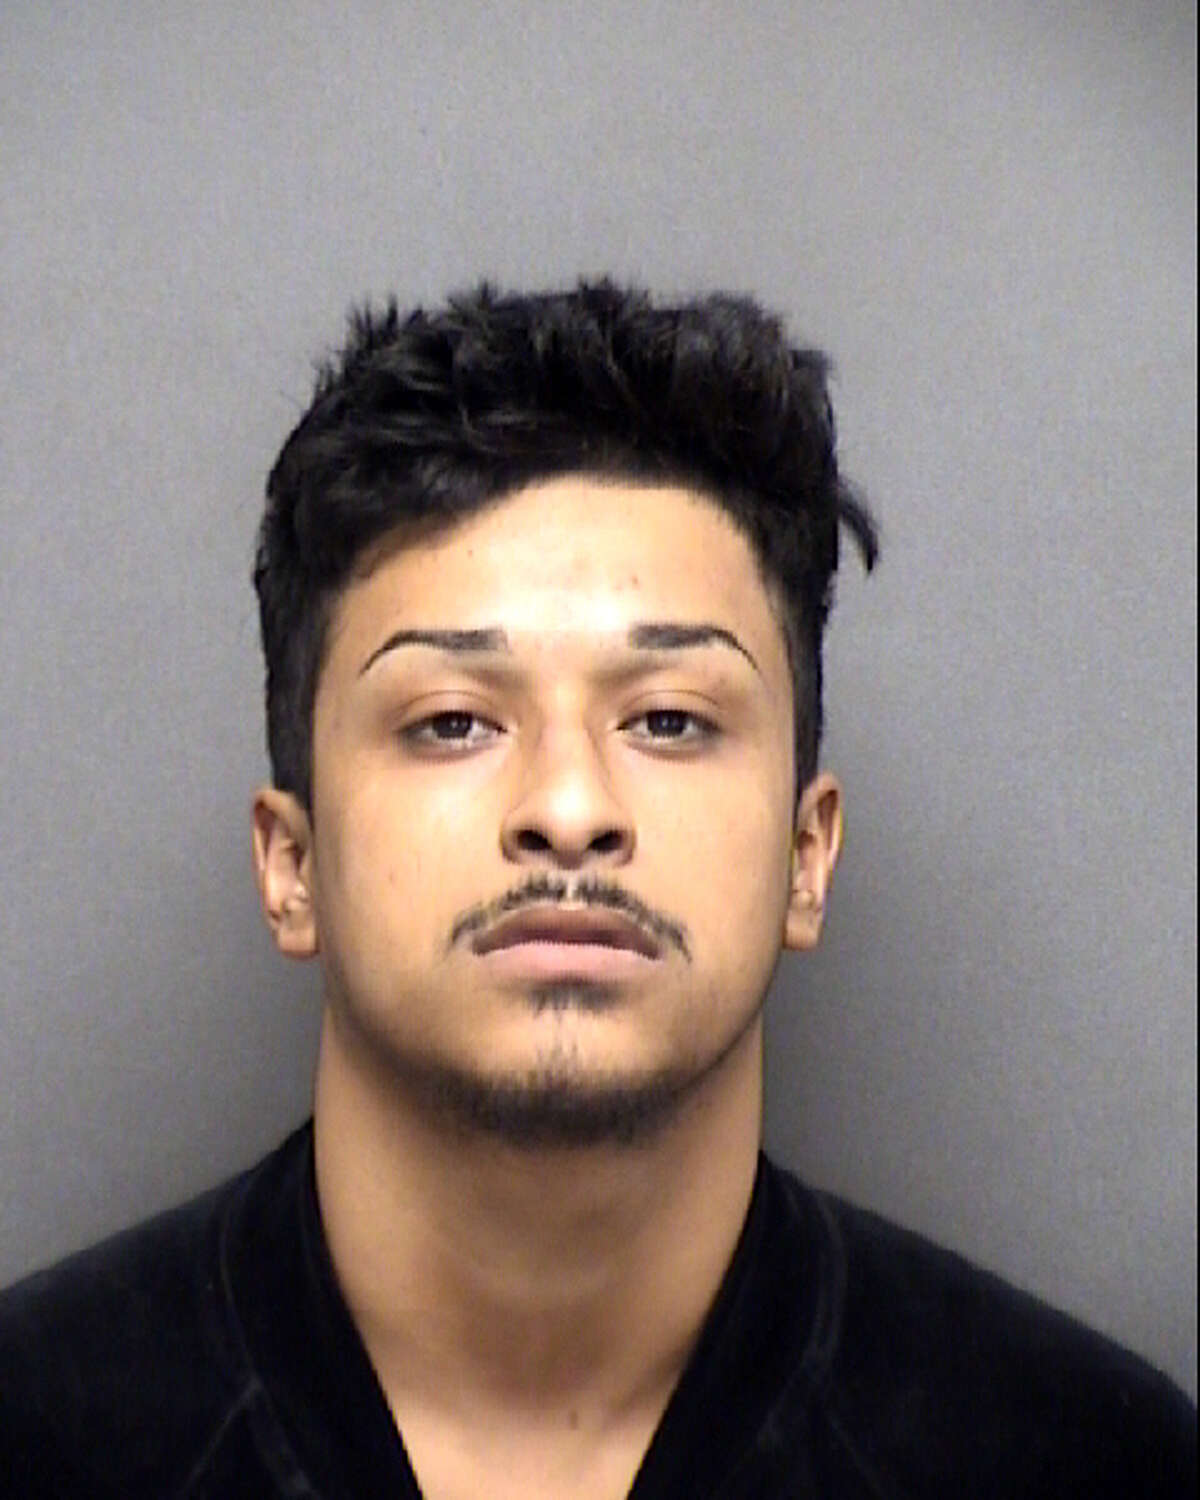 Adrian Cardenas, 22, has been charged with attempted capital murder of a police officer after shooting at San Antonio police officers.